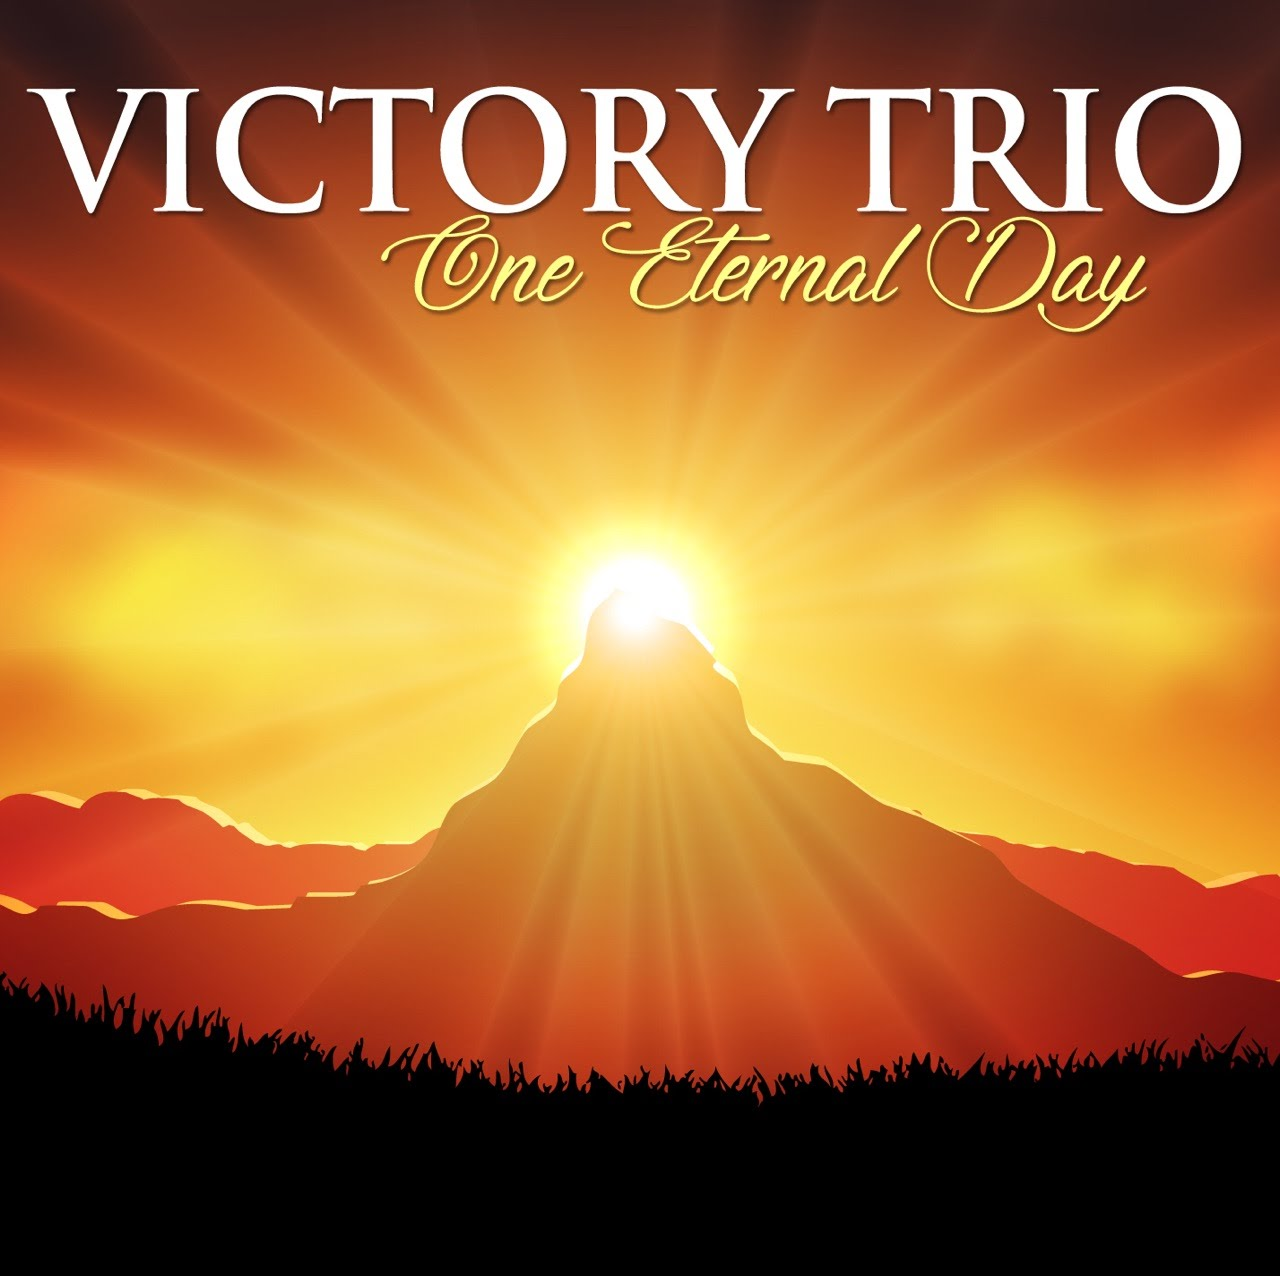 One Eternal Day Trio Ministries